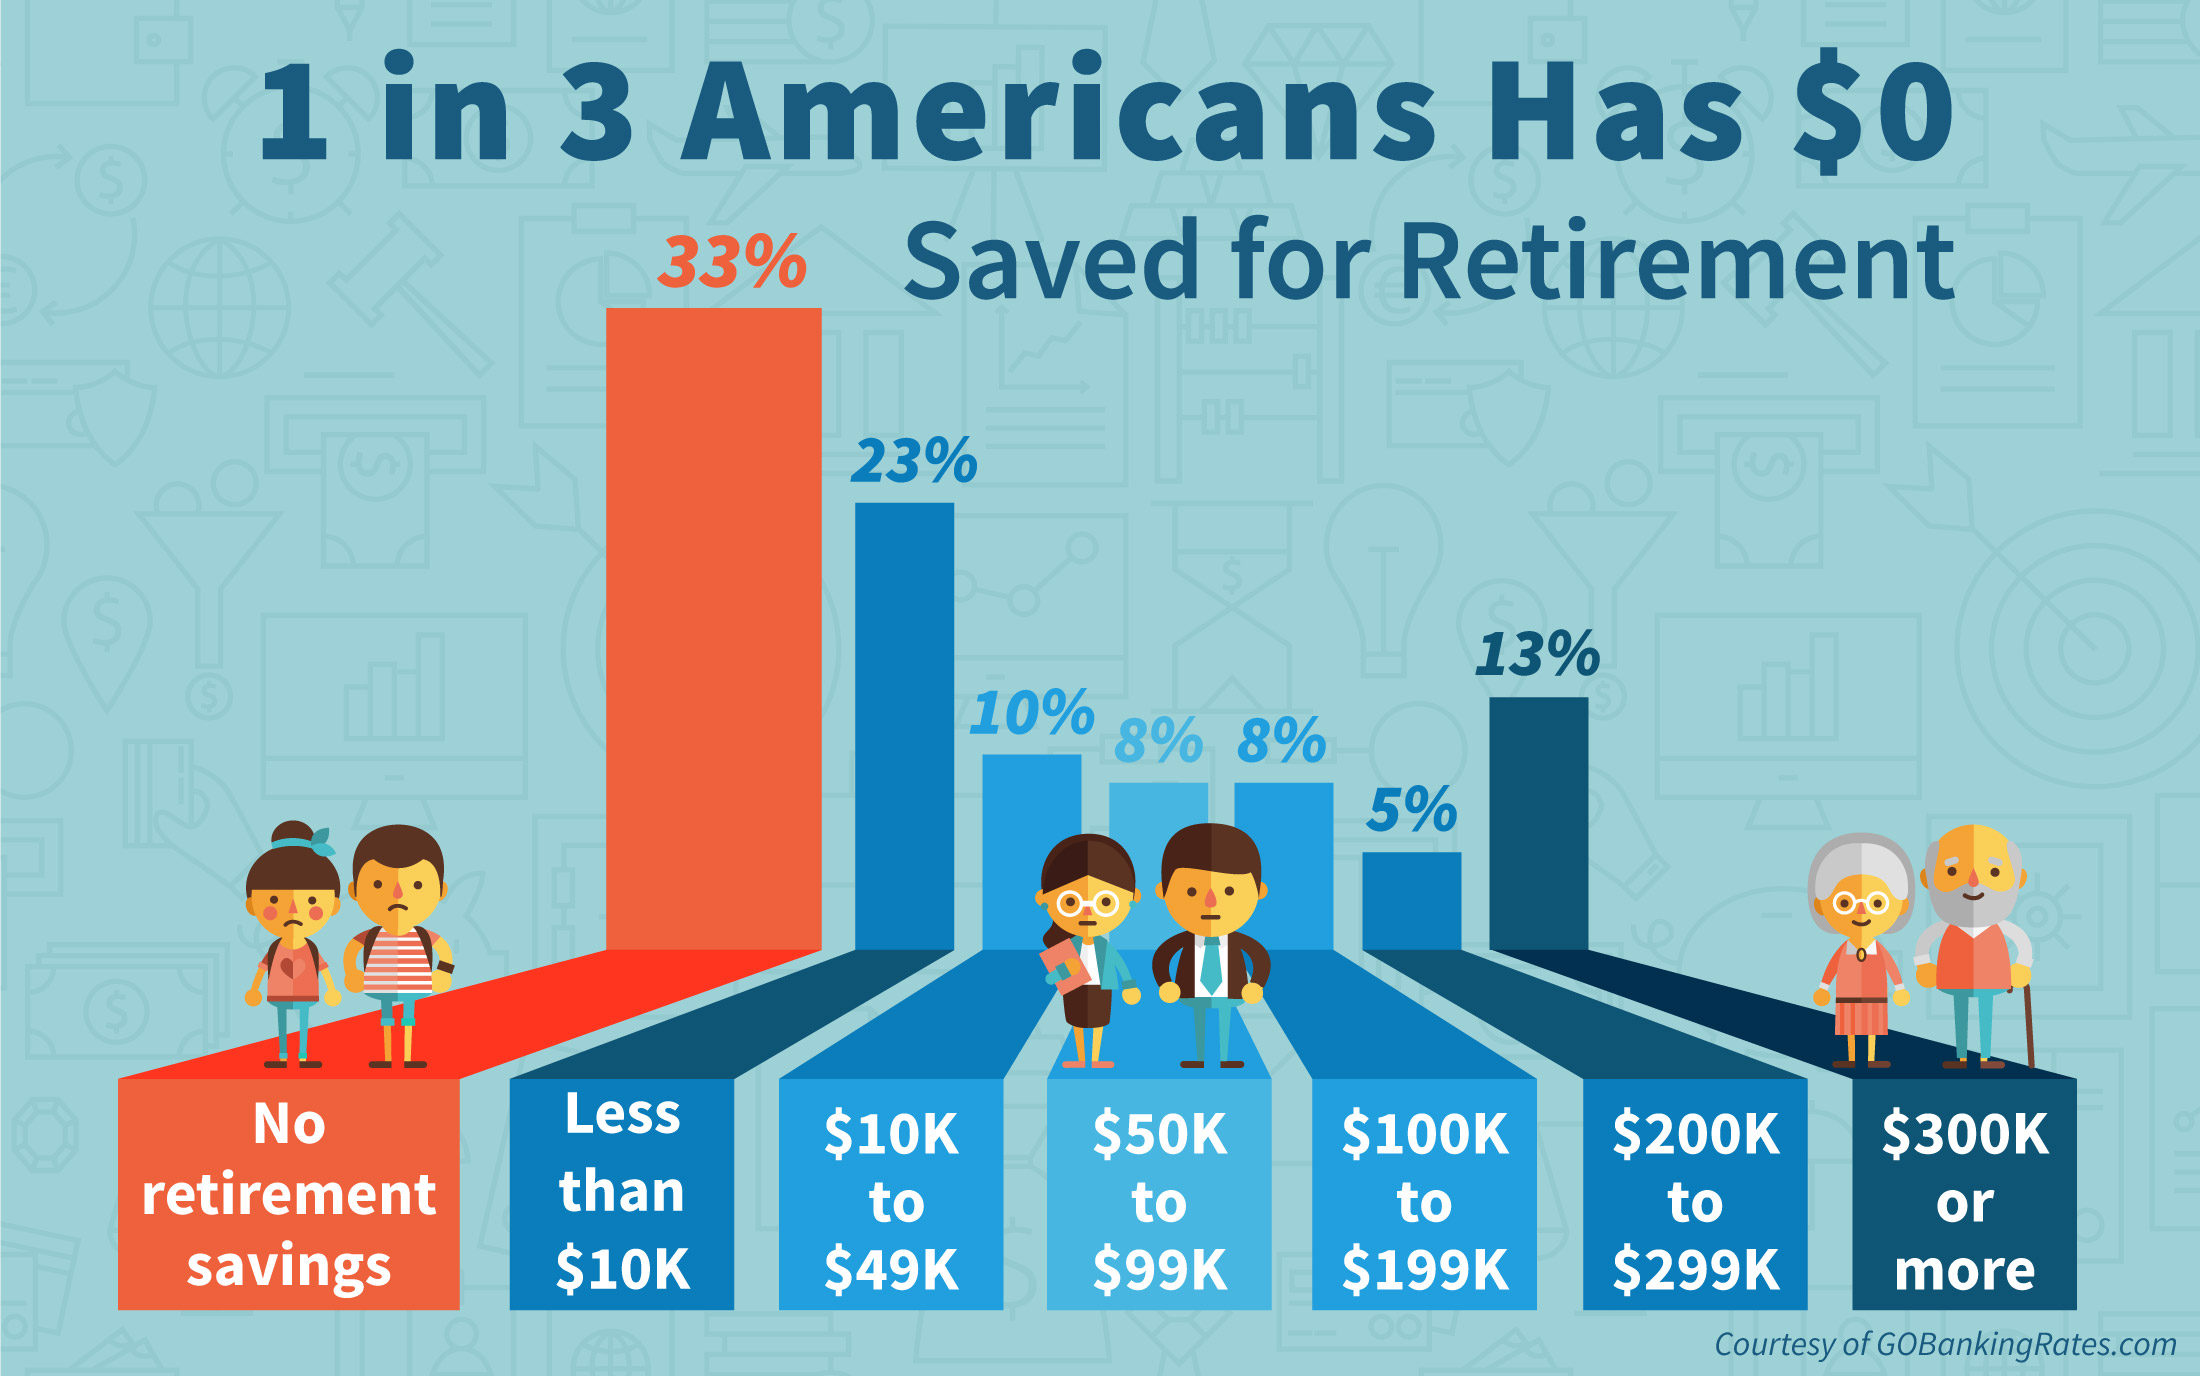 Survey: 1 in 3 People Has $0 Saved for Retirement